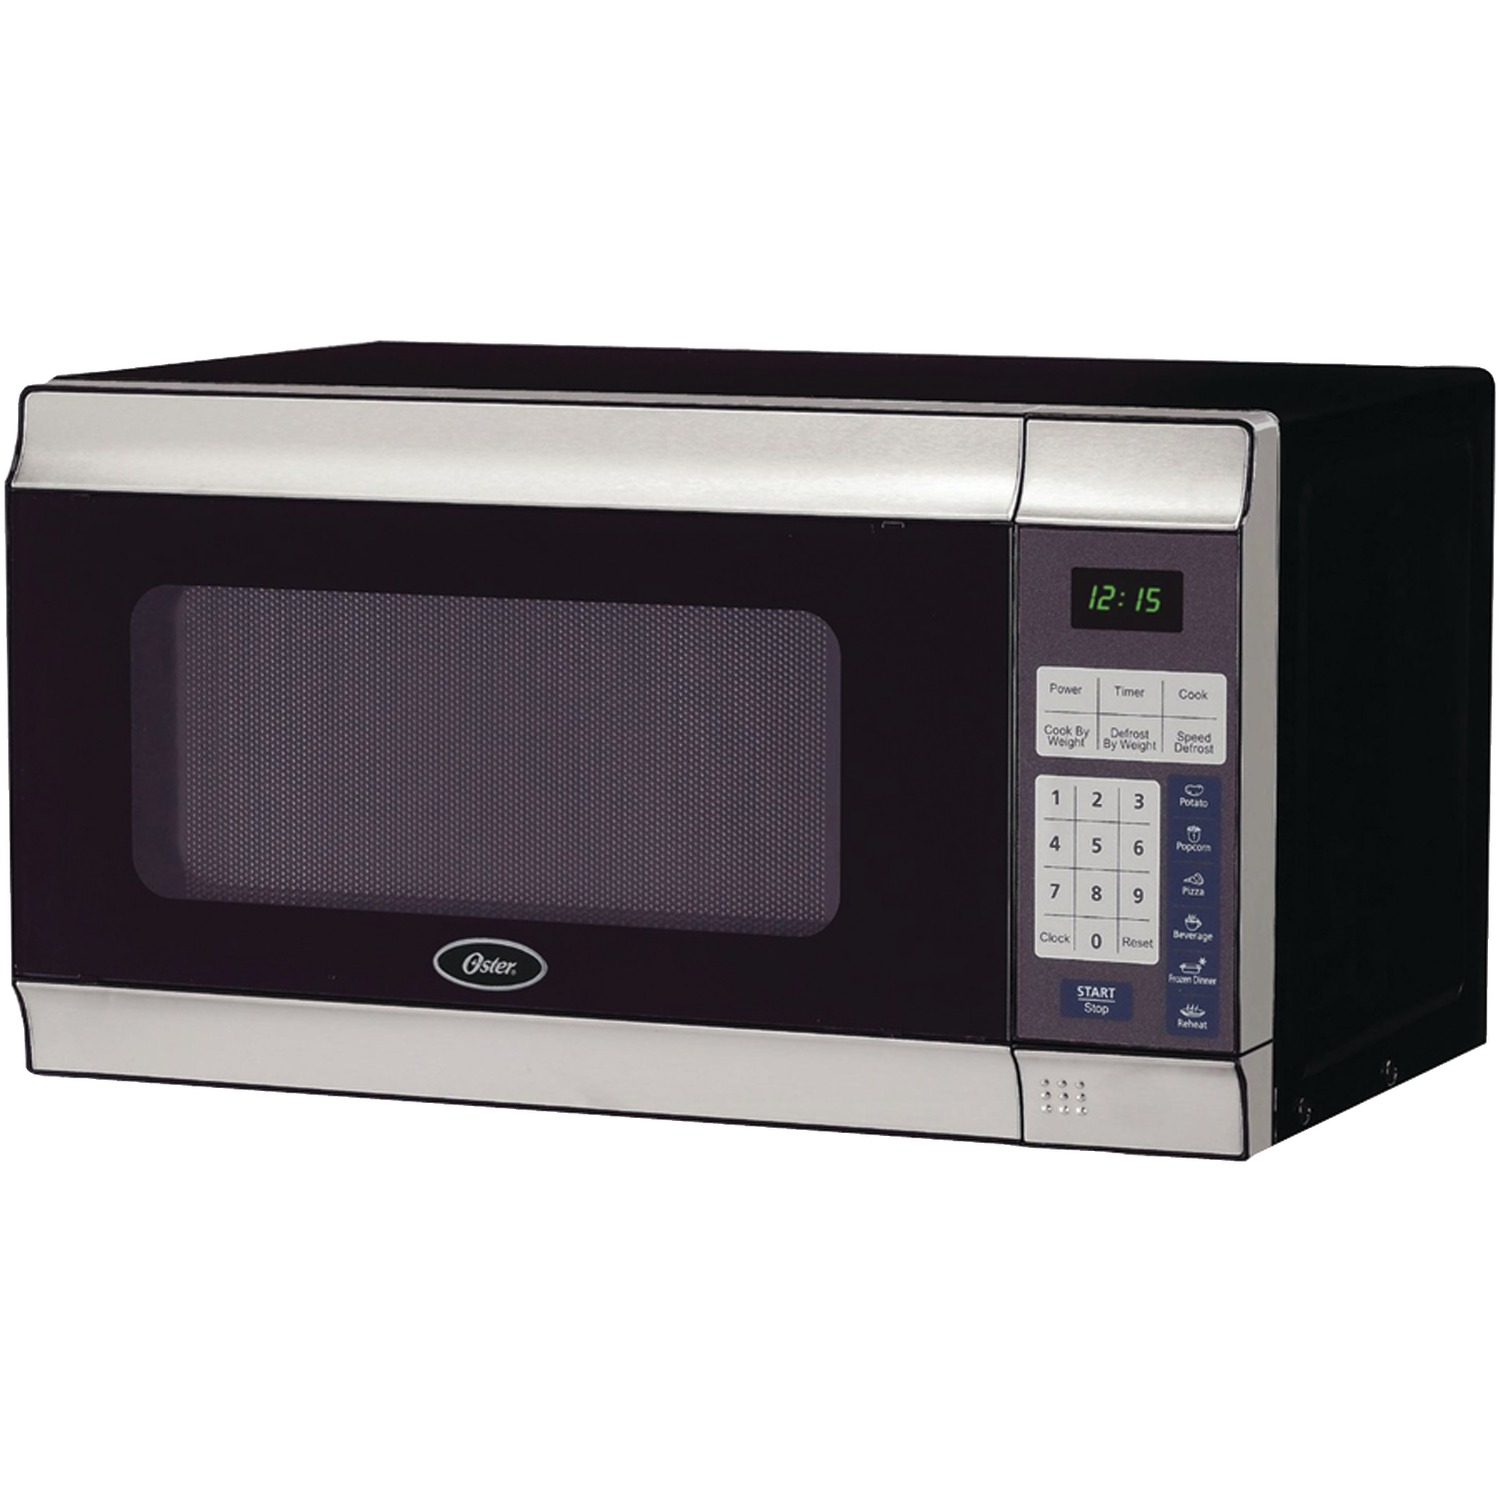 oster ogt6701 7 cubic ft stainless steel microwave walmart com